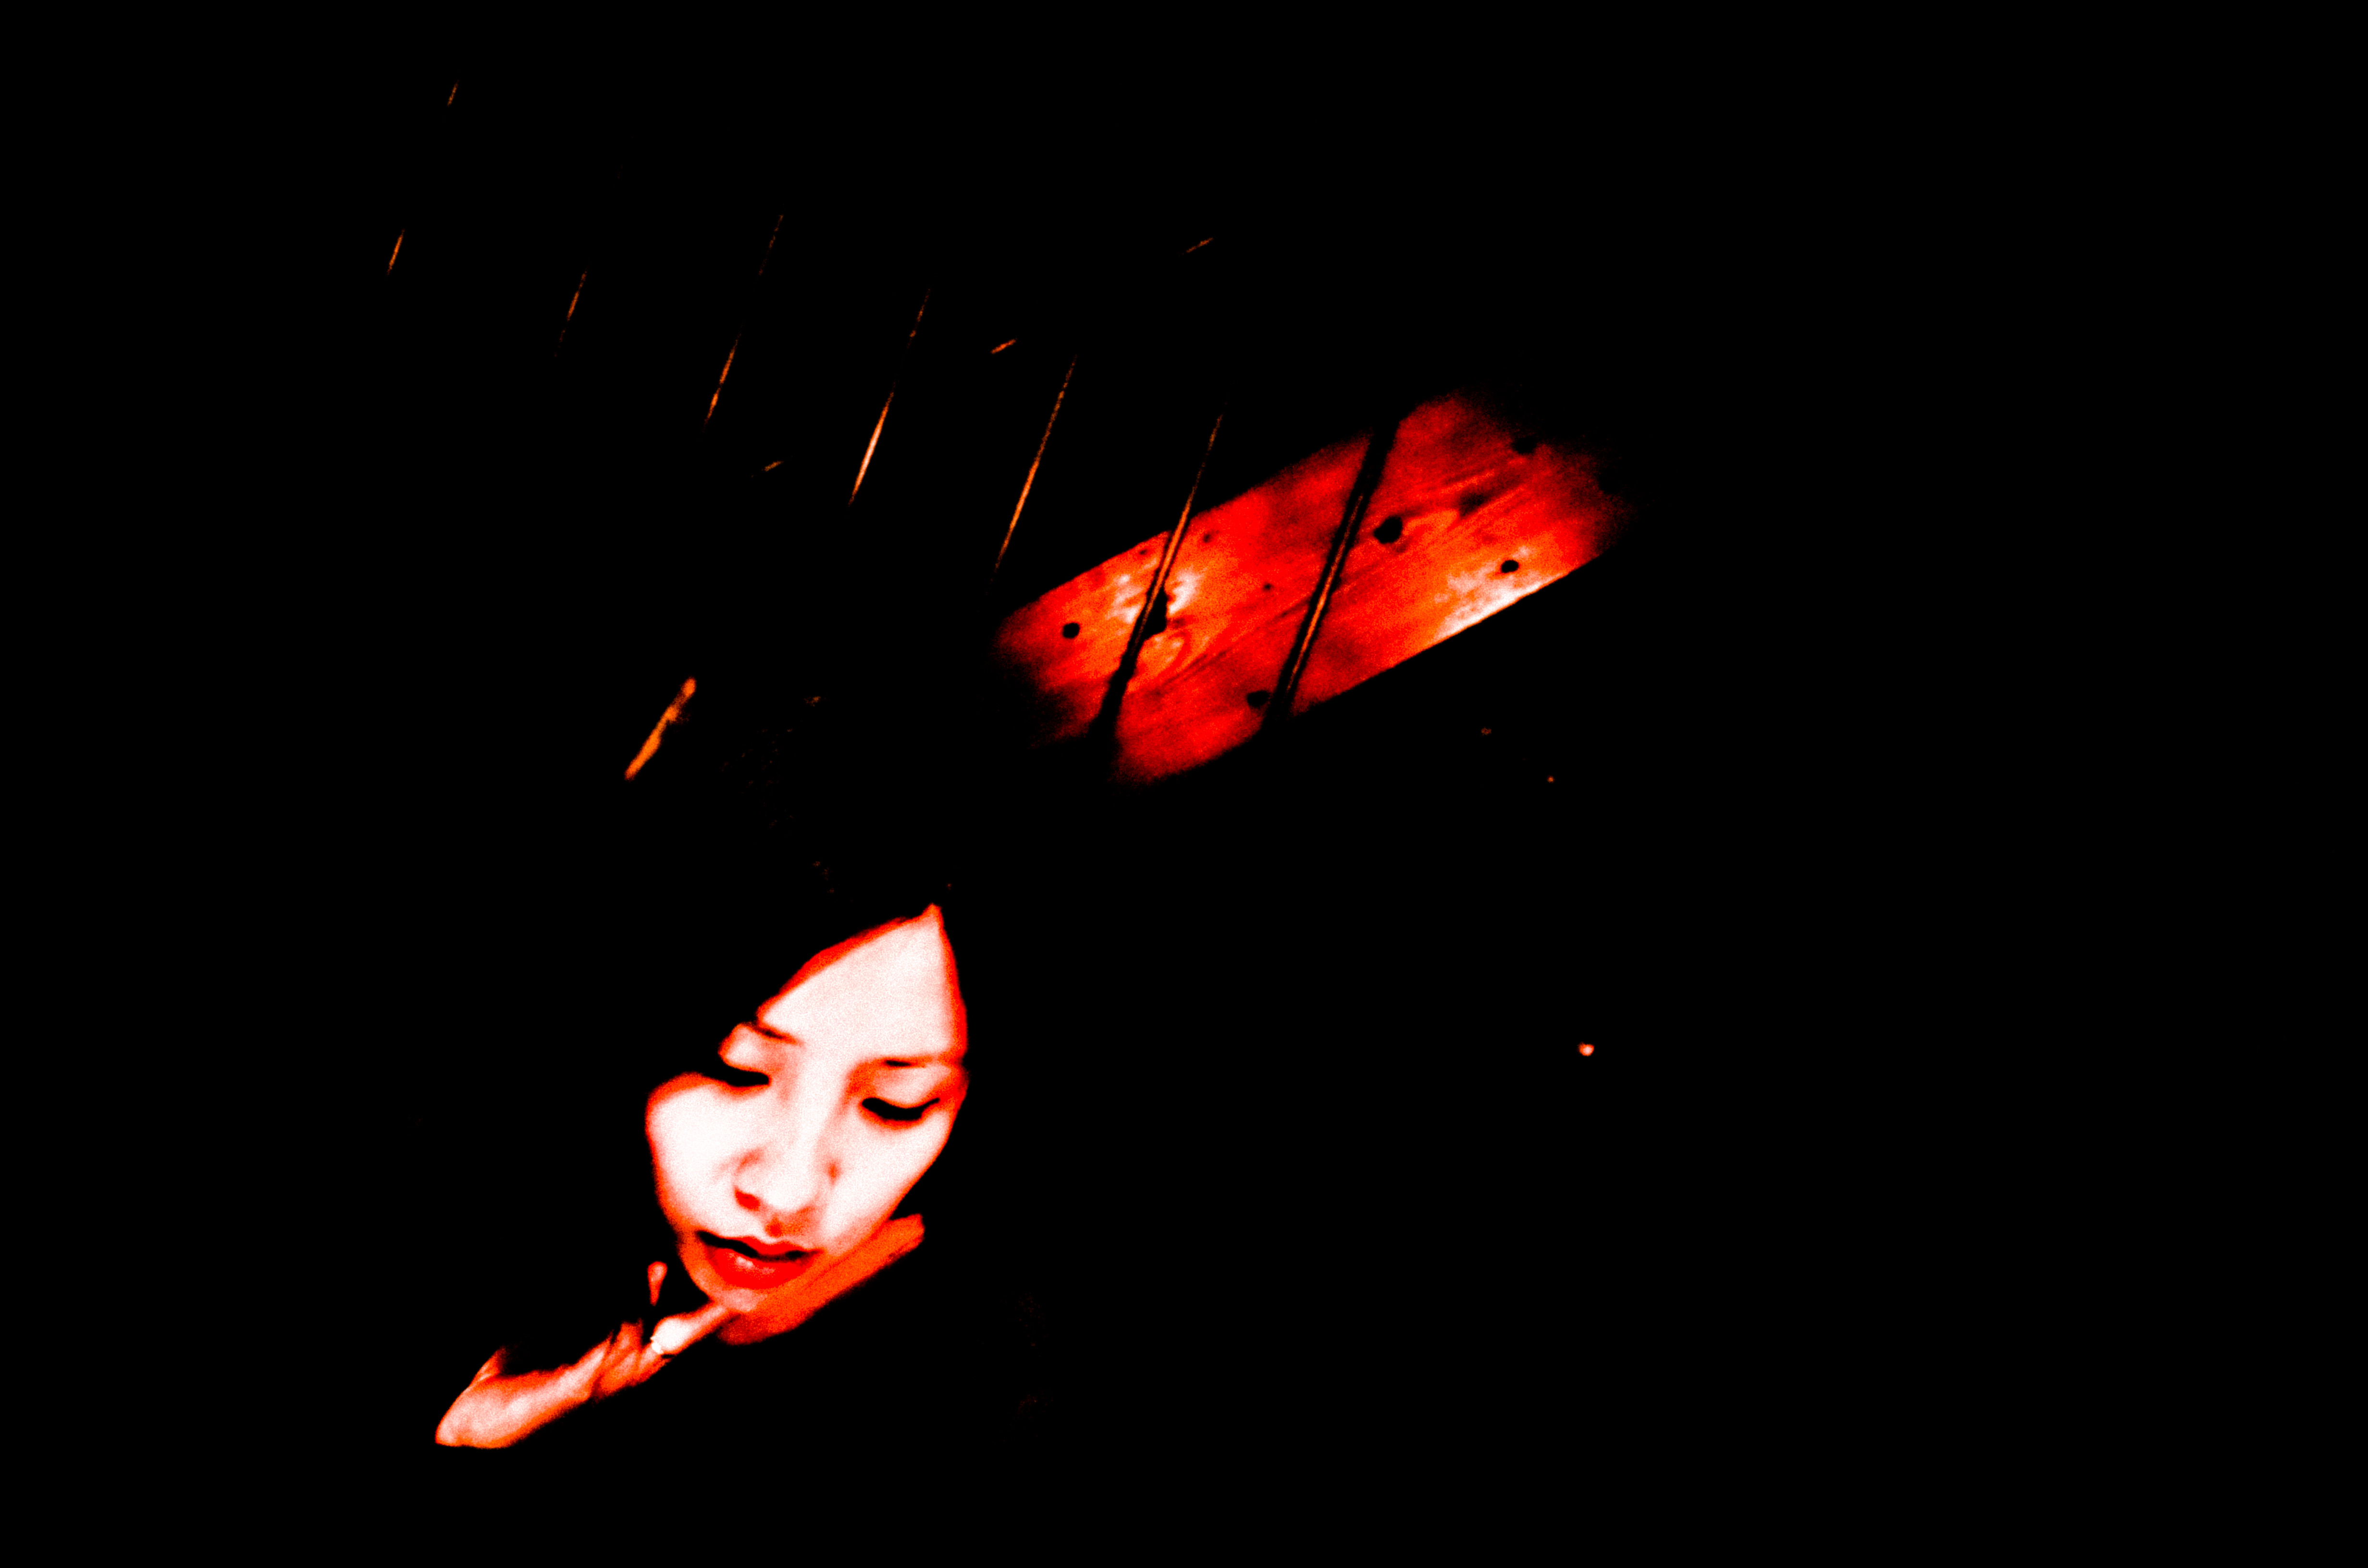 Cindy at work at cafe, with red light. Kyoto, 2017